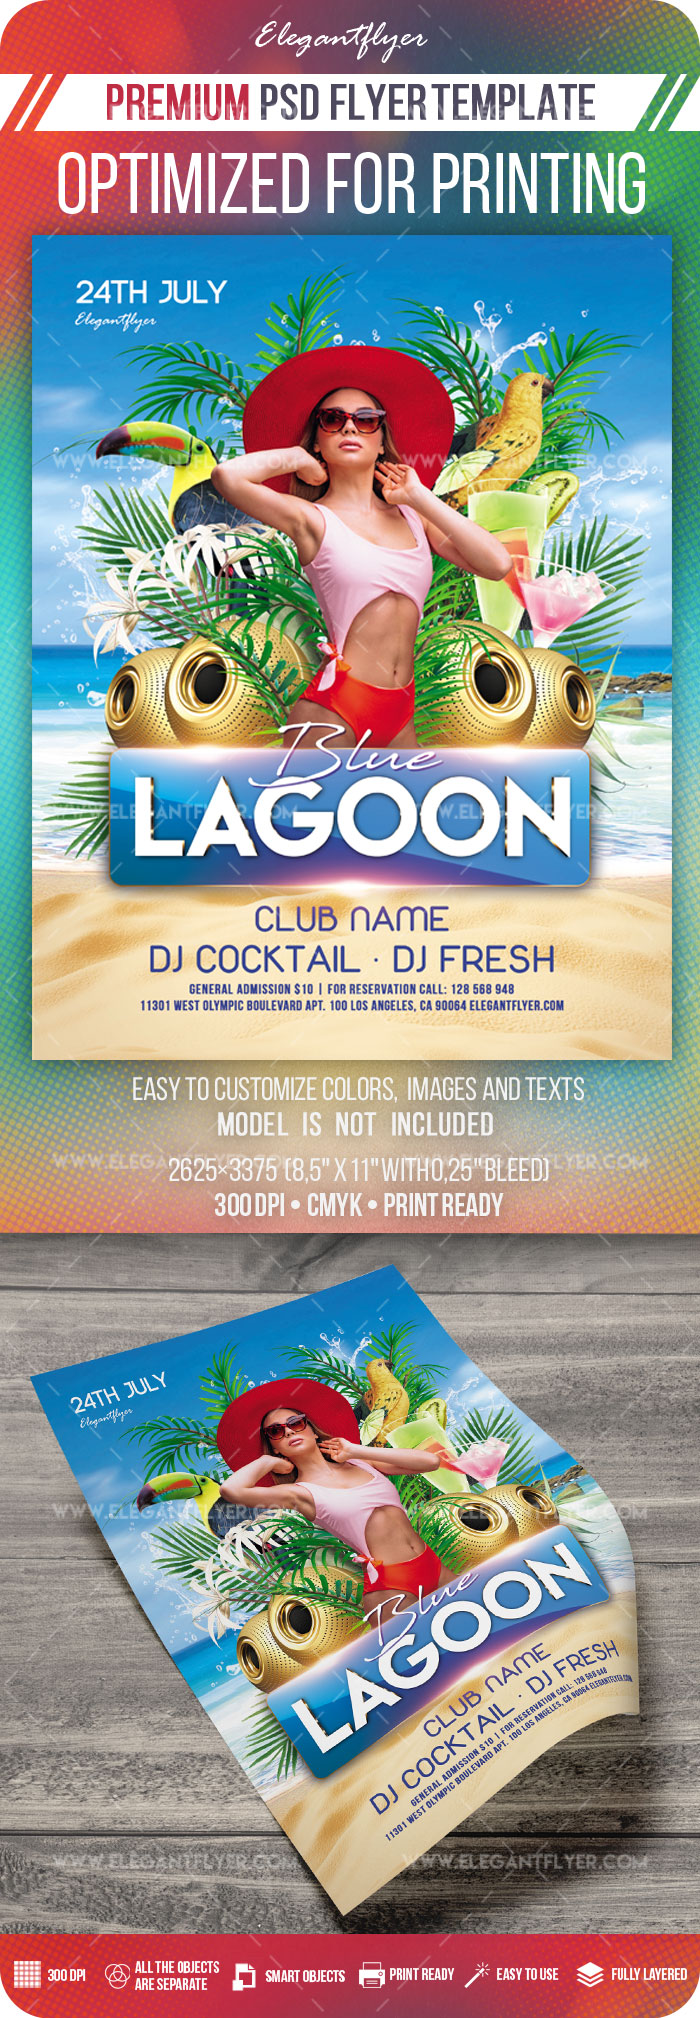 Blue Lagoon – Premium Flyer Template in PSD